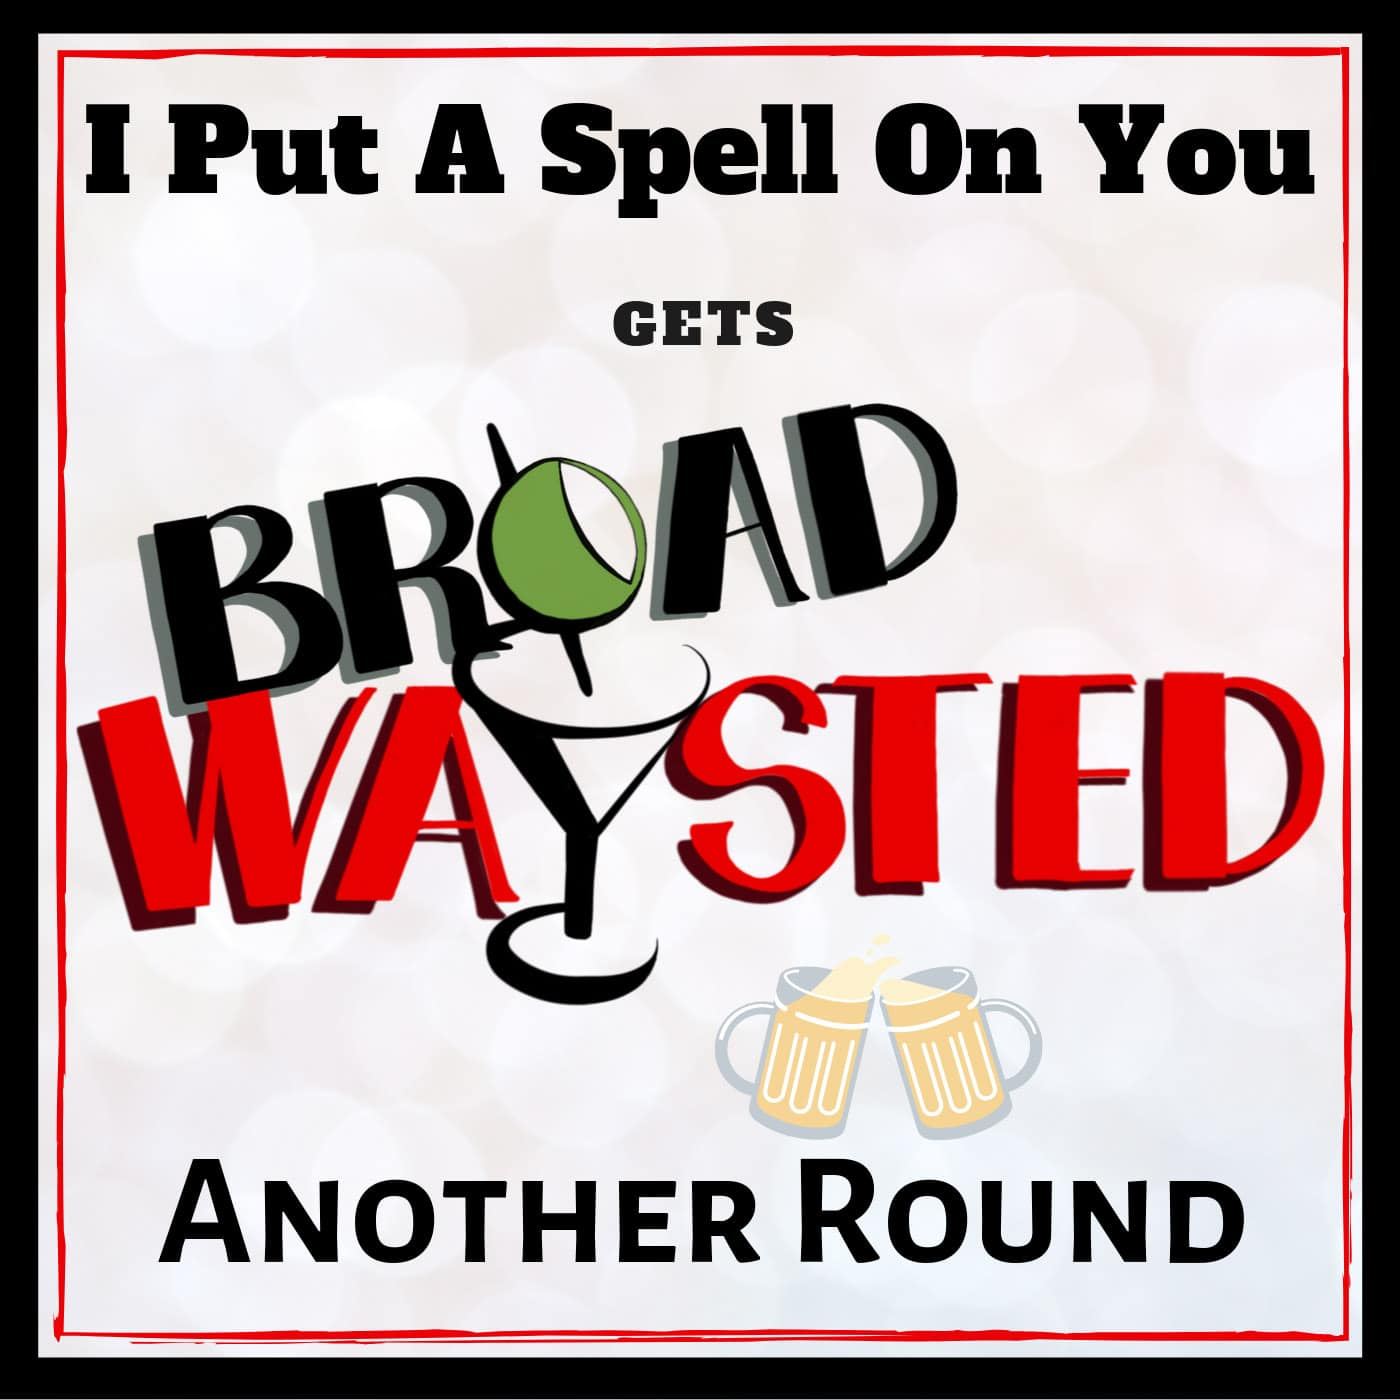 Broadwaysted Another Round I put a spell on you